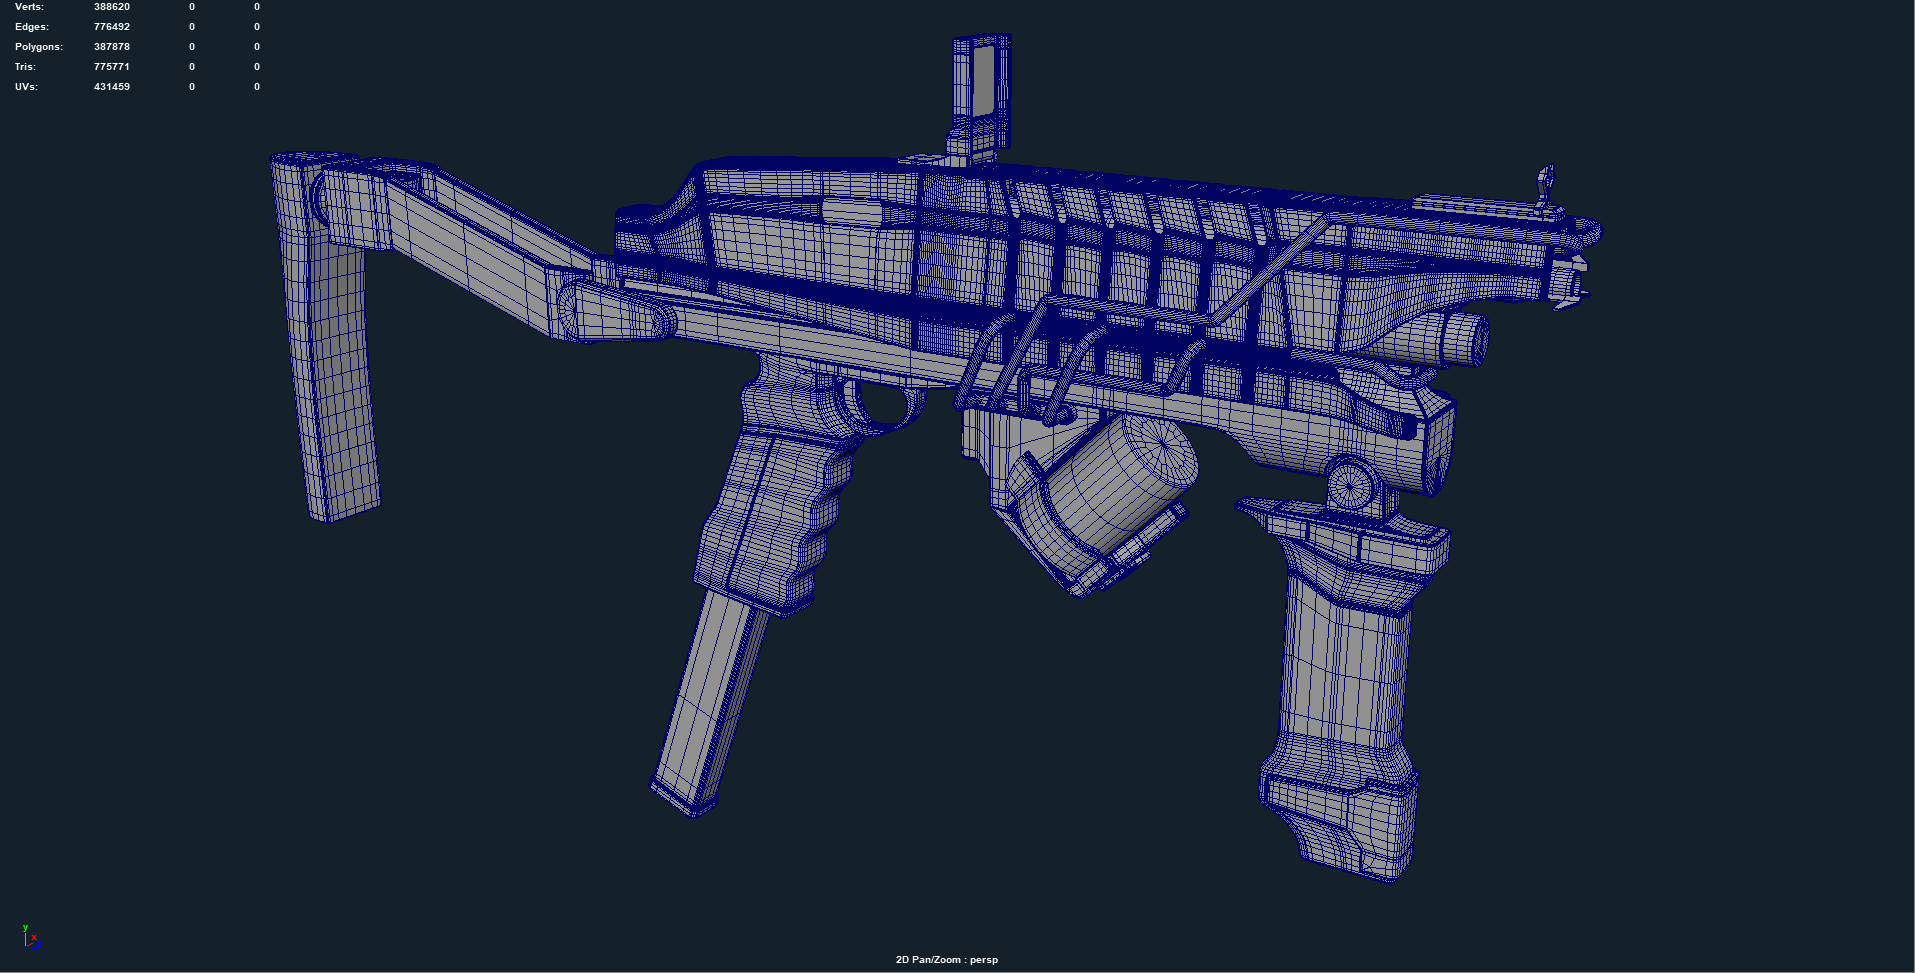 High Poly at 775,771 triangles.